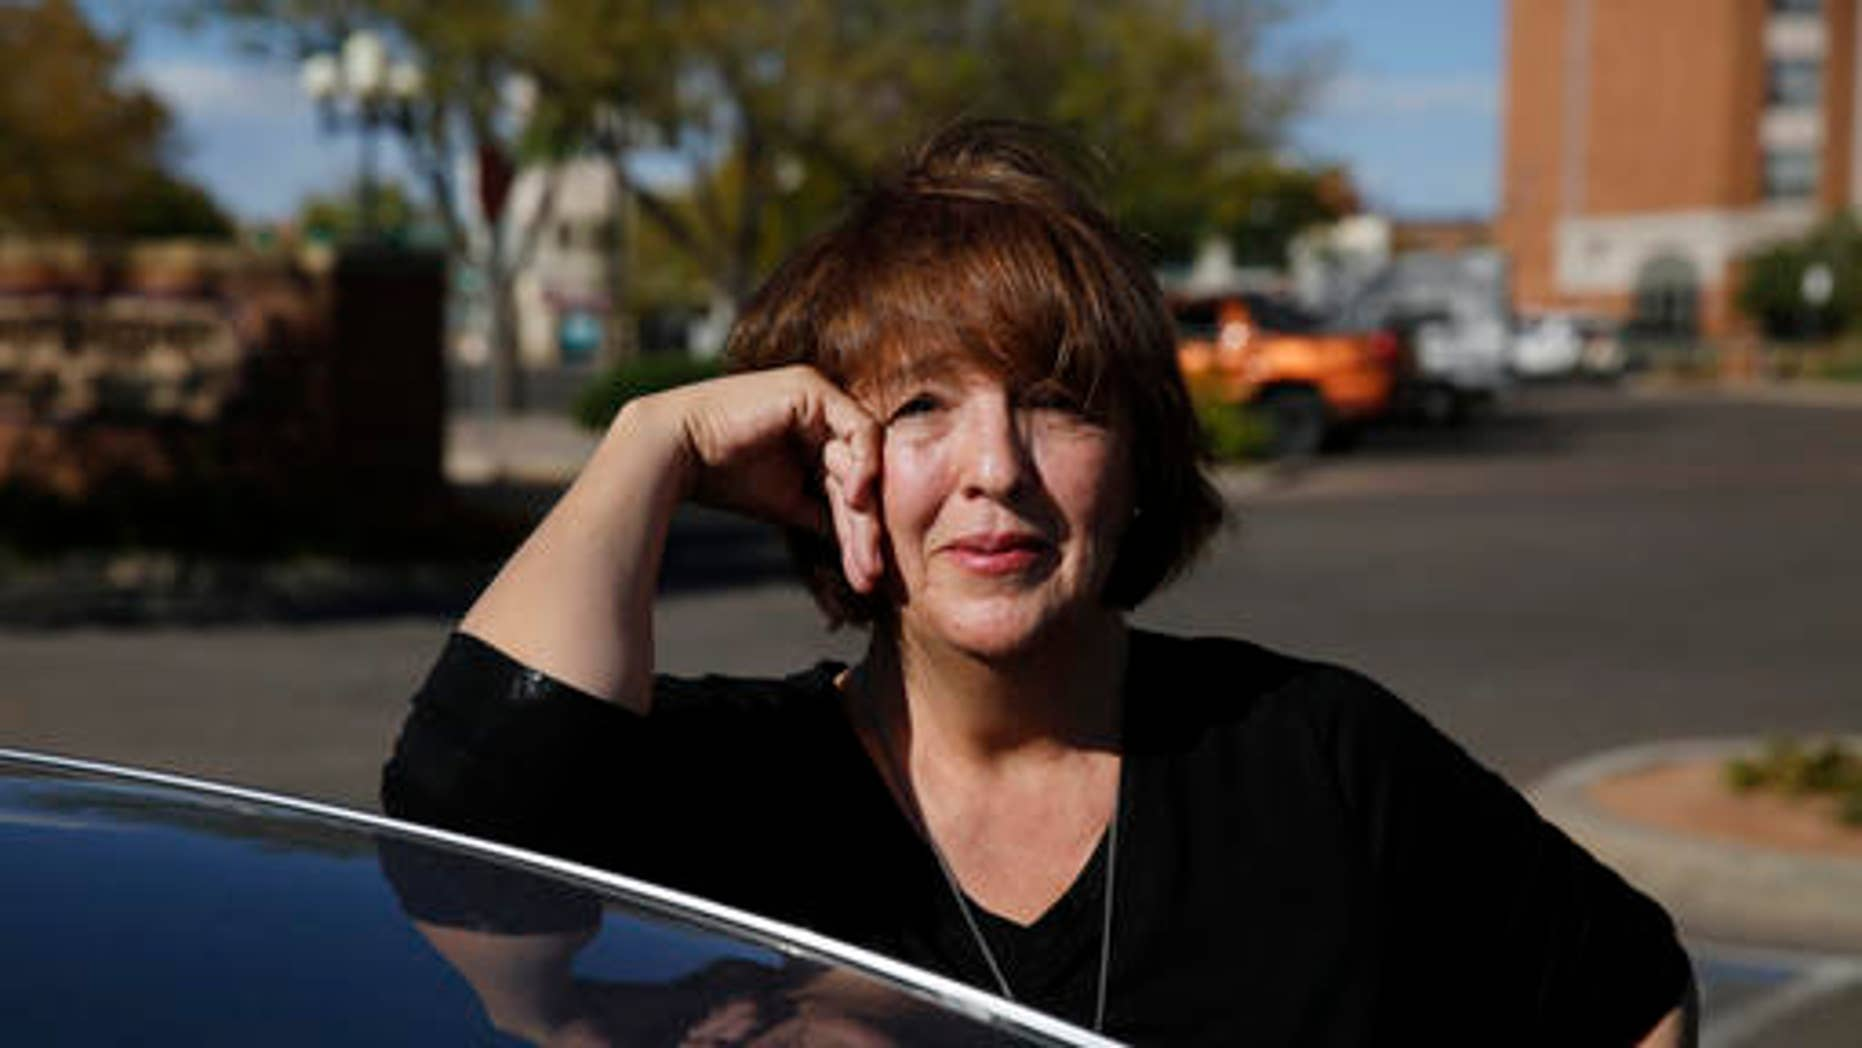 In this Oct. 4, 2016 photo, Donald Trump supporter Mary Celeste Madrid stands by her car, in Pueblo, Colo. A longtime Democrat and Obama voter who changed her registration to Republican last year over the GOP's support for gun rights and opposition to abortion, Madrid says she's also had to endure family battles over her support for Trump. (AP Photo/Brennan Linsley)